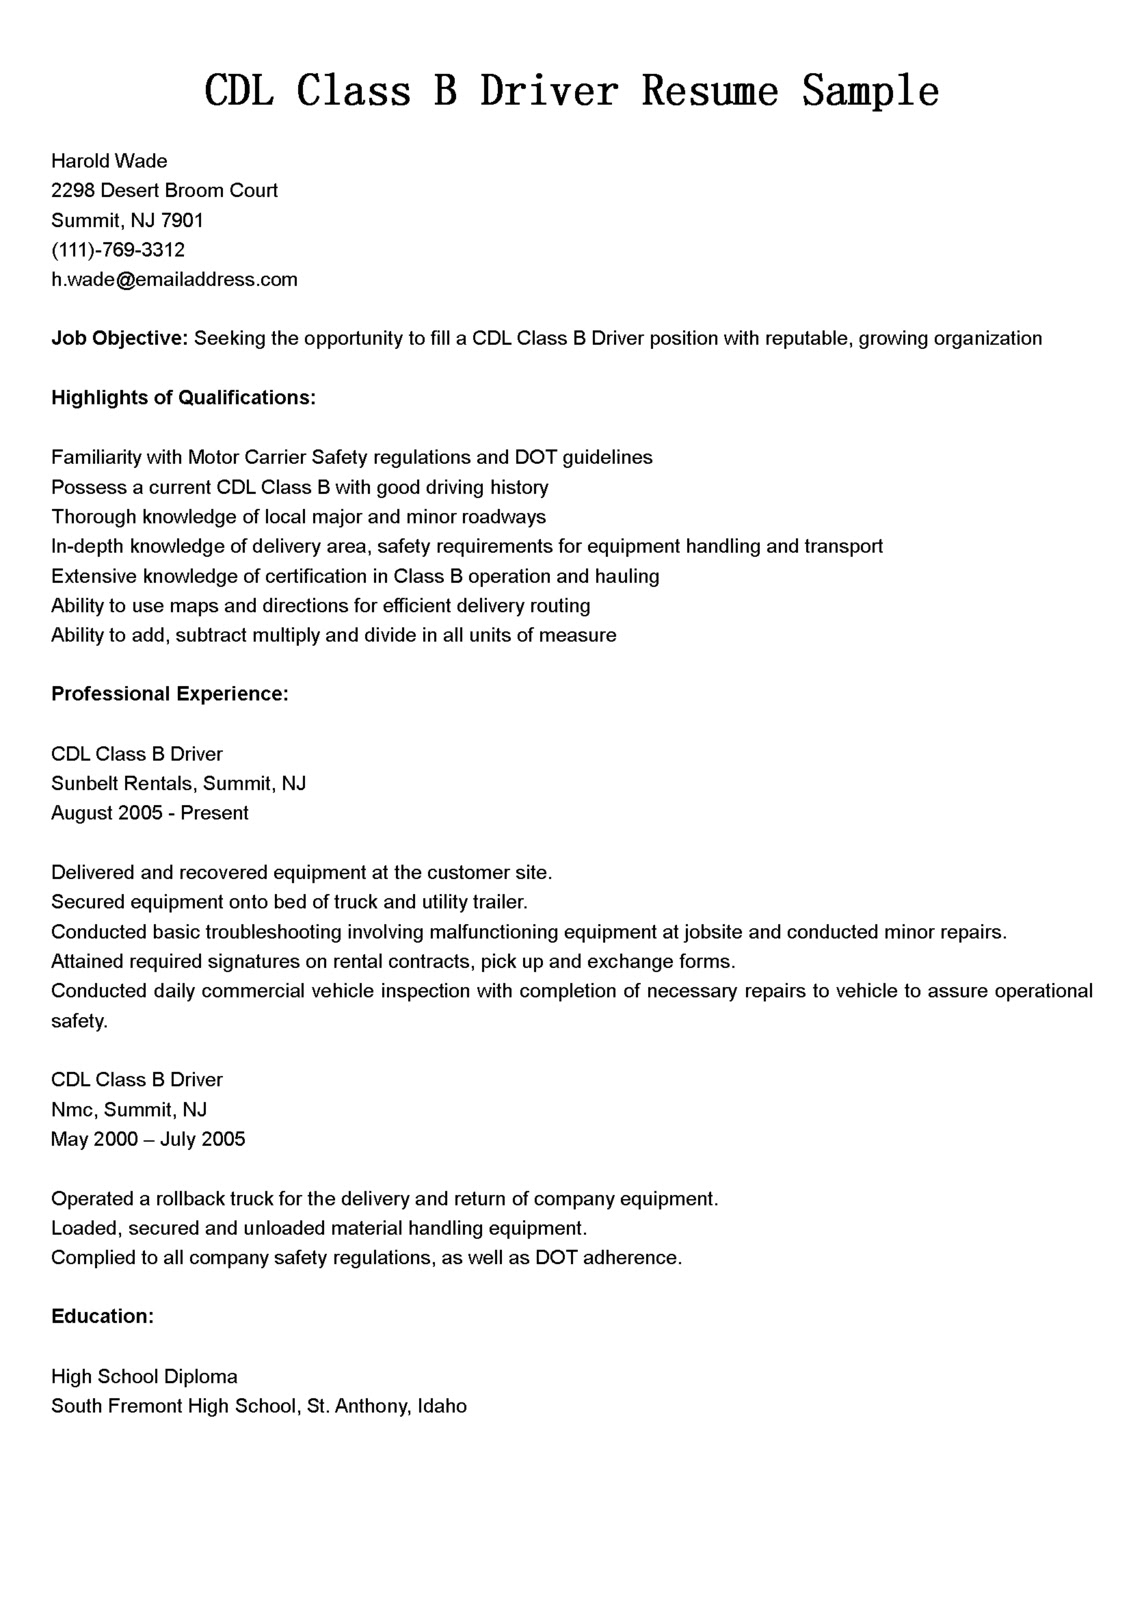 driver resumes  cdl class b driver resume sample